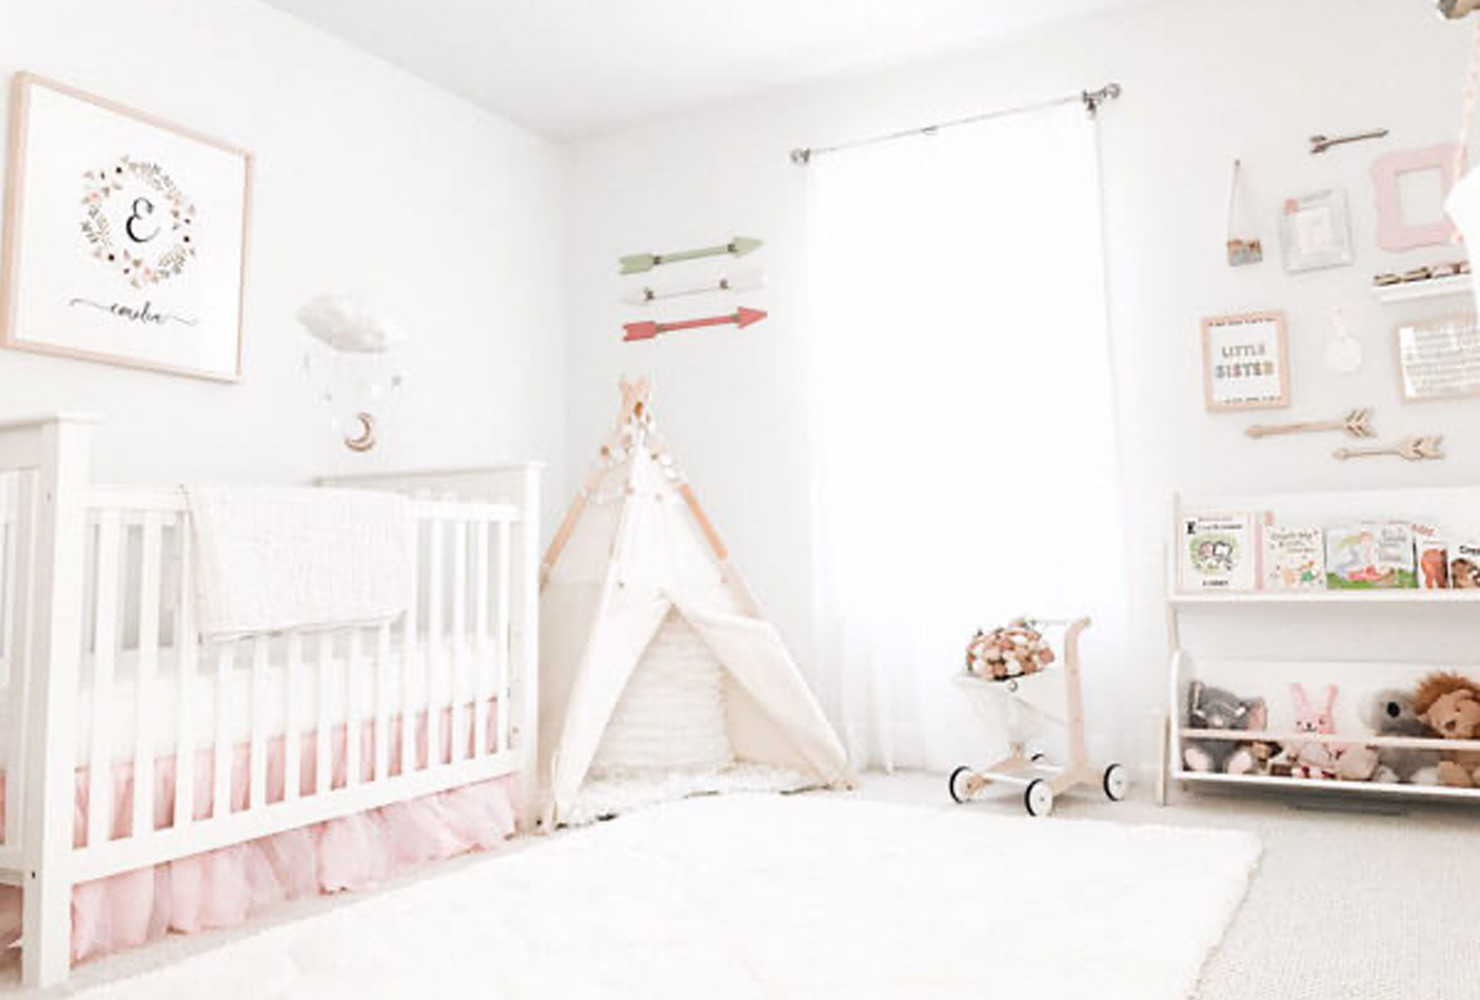 BABY COT CANOPY 8 DIFFERENT COLORS WITH STARS SWEET BABY